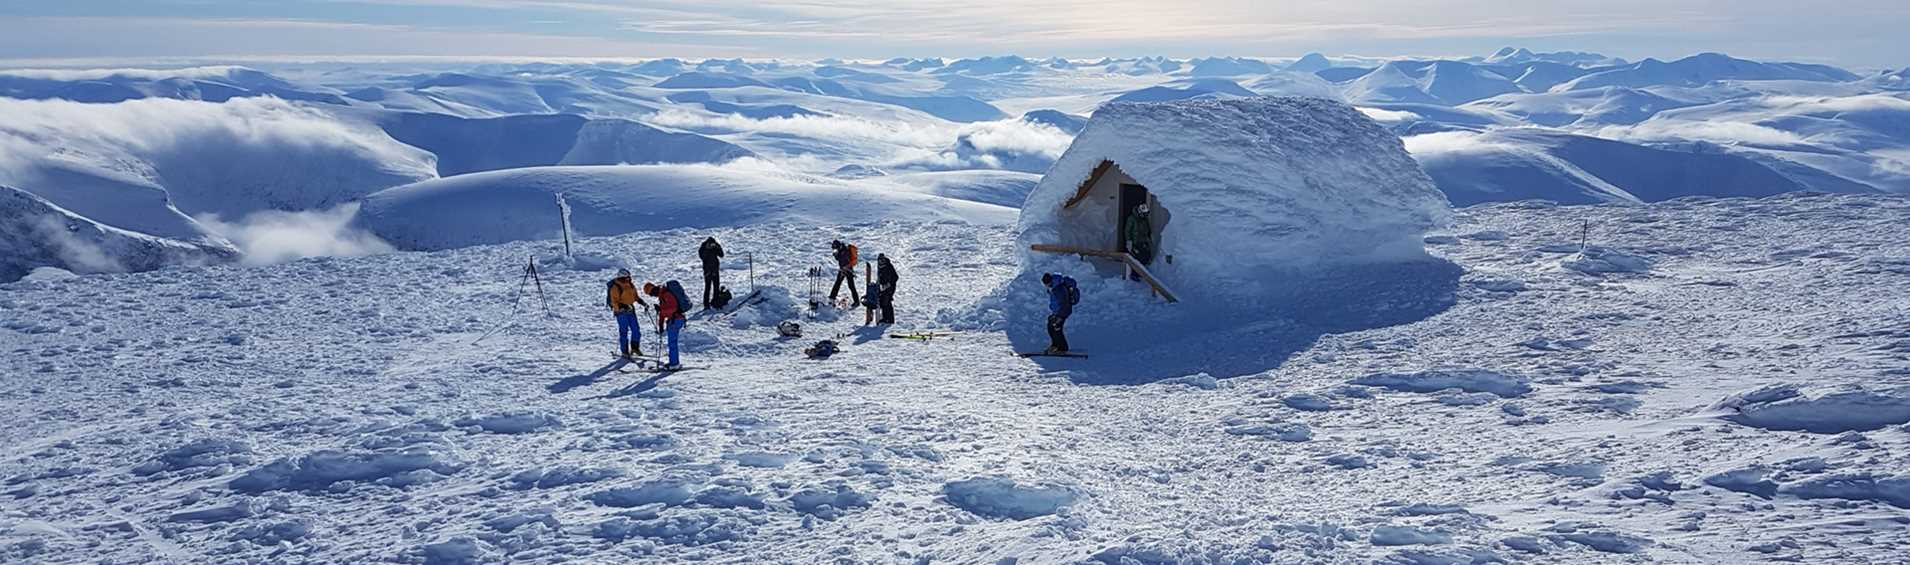 Skiers standing next to a cabin partly covered in snow